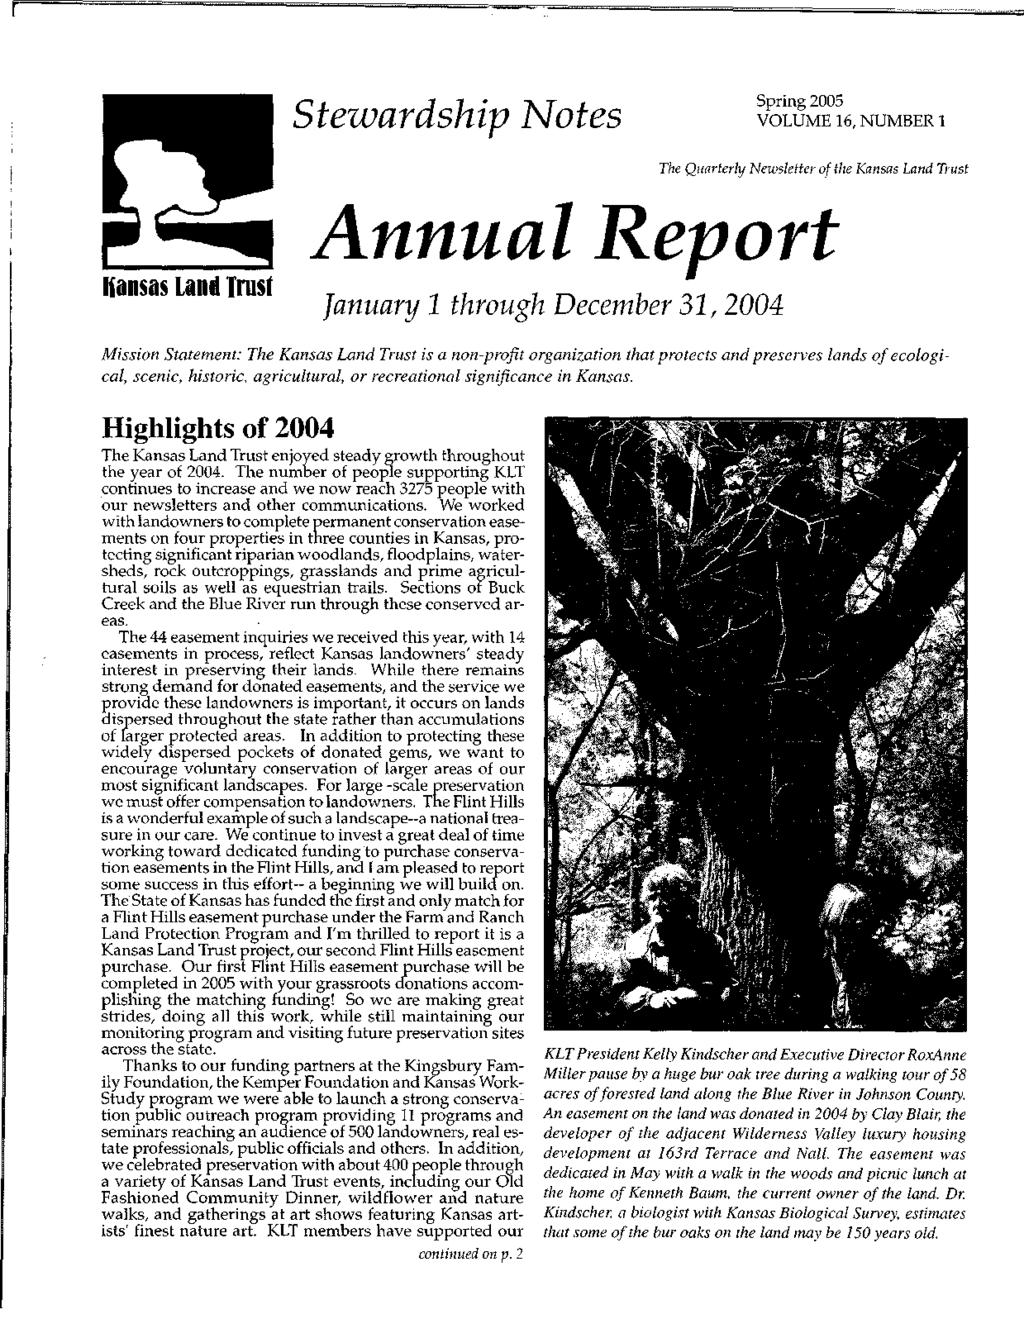 Stewardship Notes Spring 2005 VOLUME 16, NUMBER 1 The Quarterly Newsletter of the Kansas Land Trust Hansas Land Irusf Annu 1 por January 1 through December 31, 2004 Mission Statement: The Kansas Land